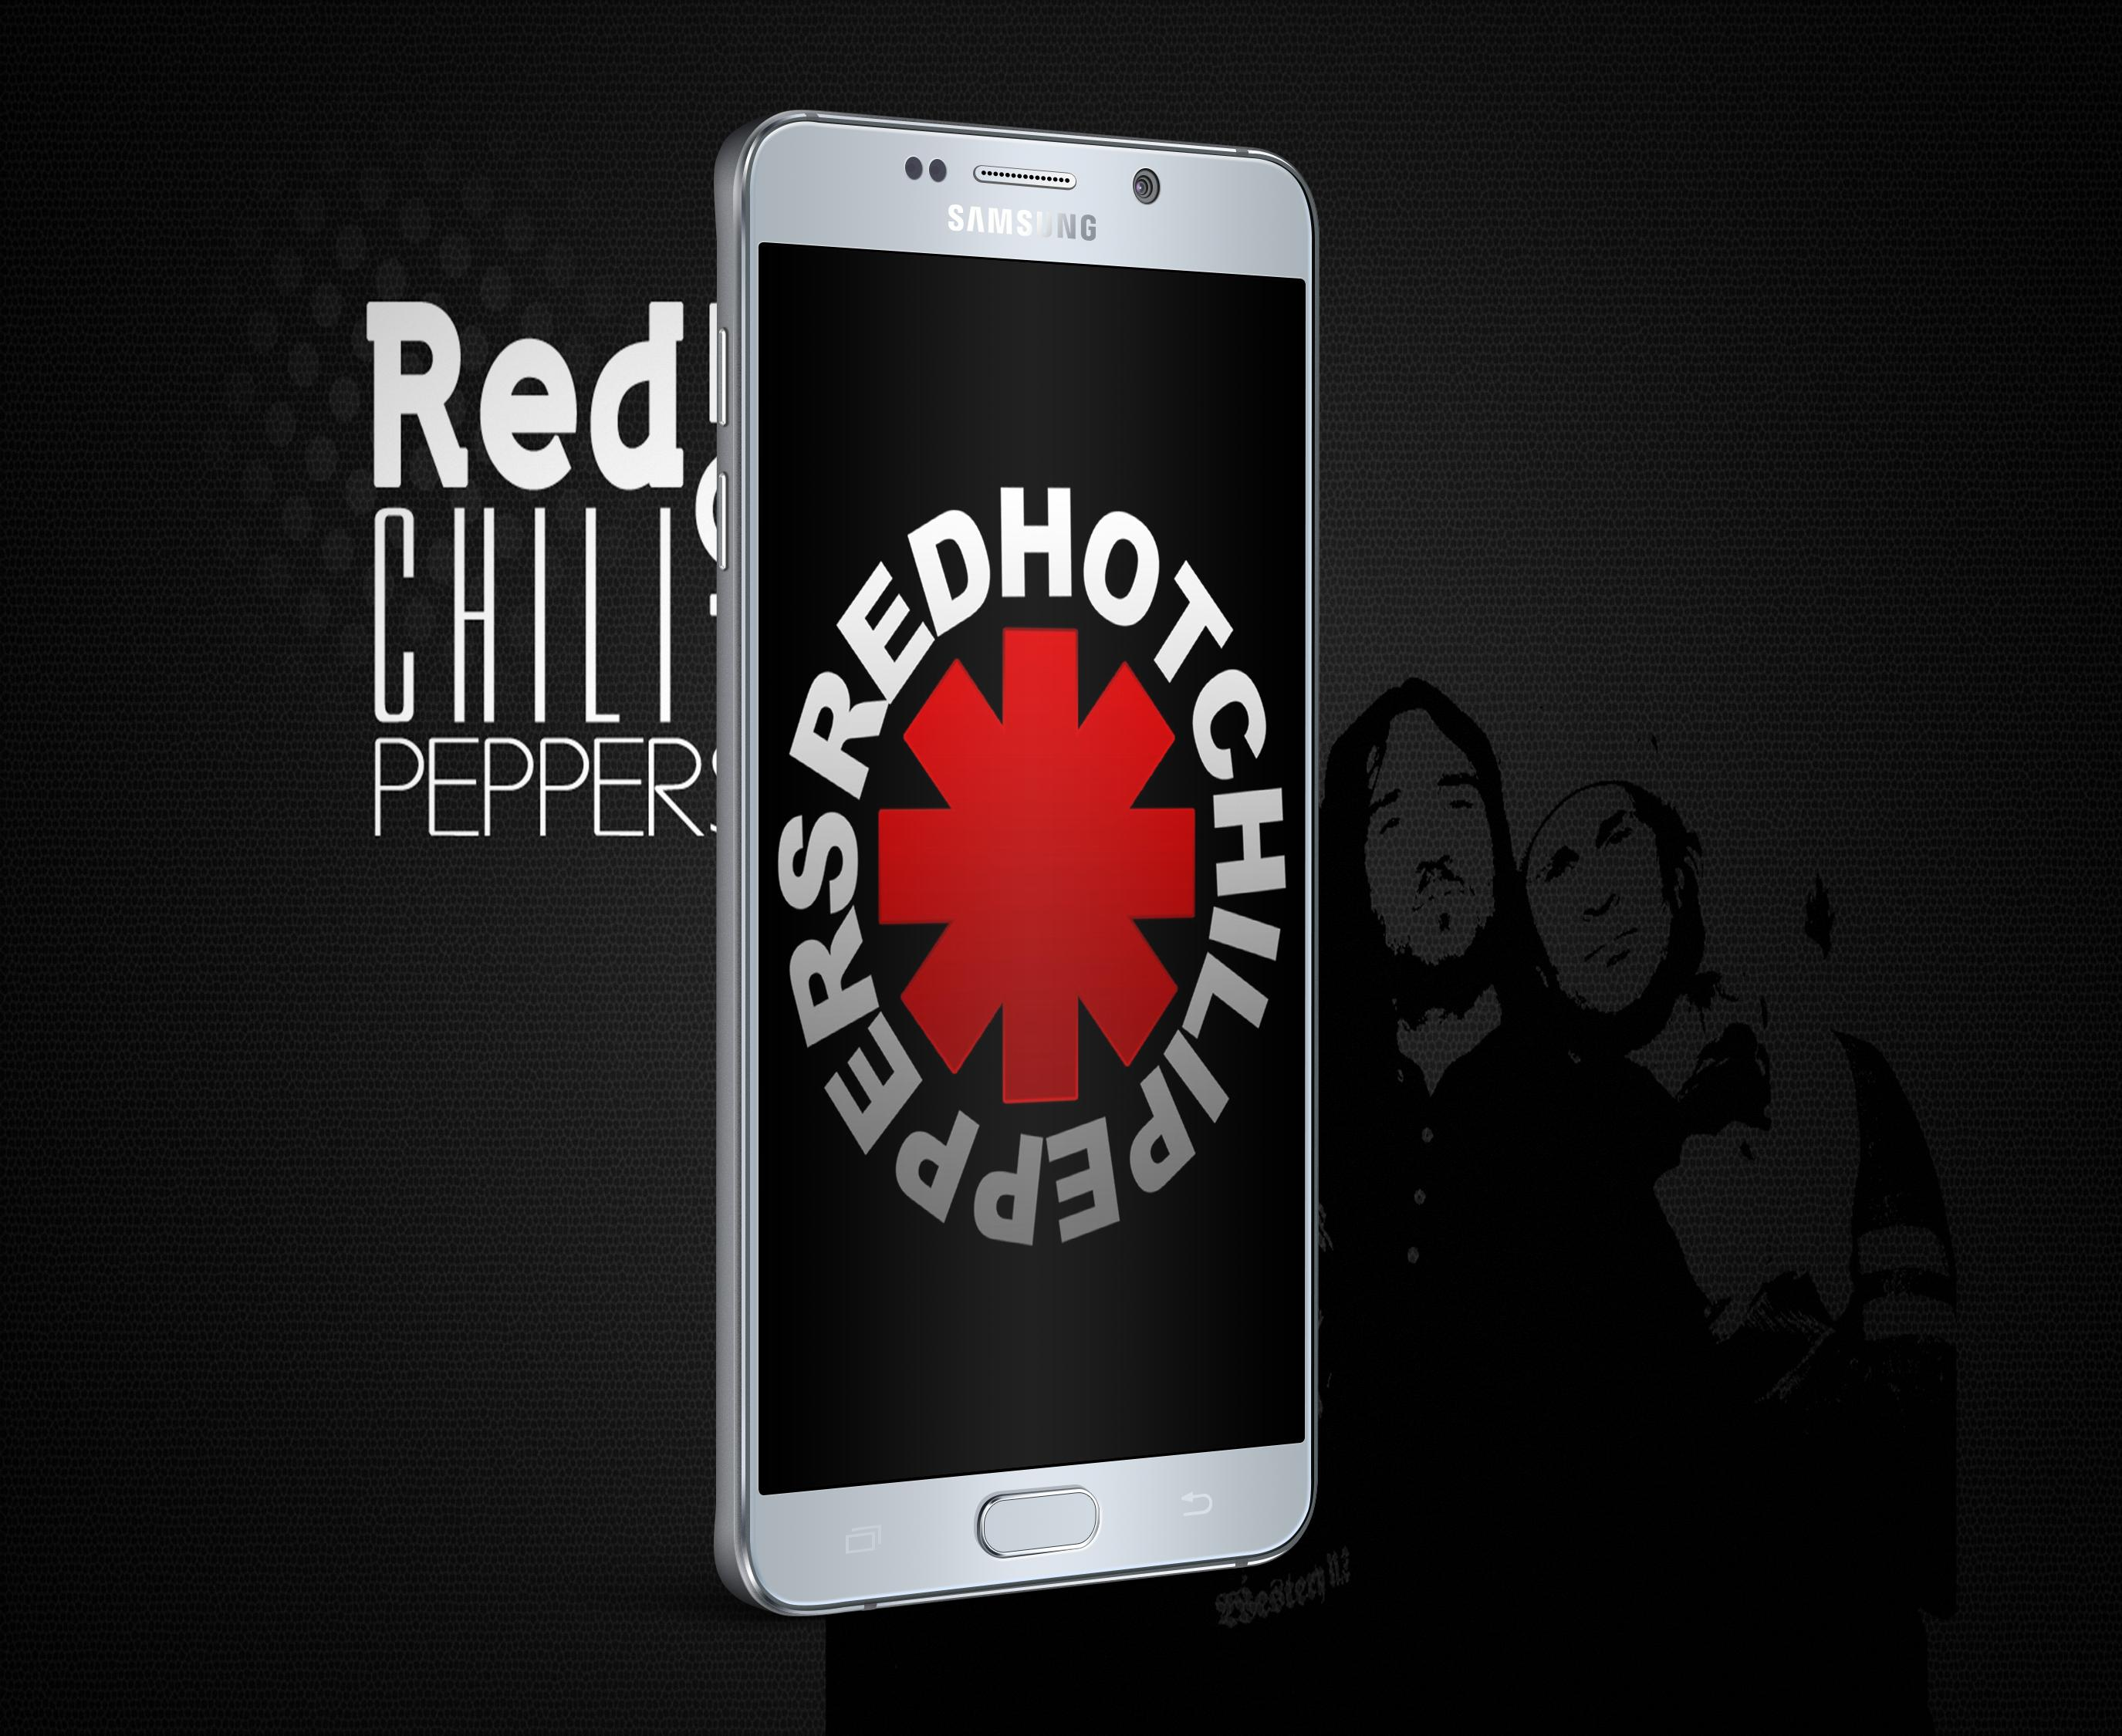 Red Hot Chili Peppers Rchp Wallpaper 13300